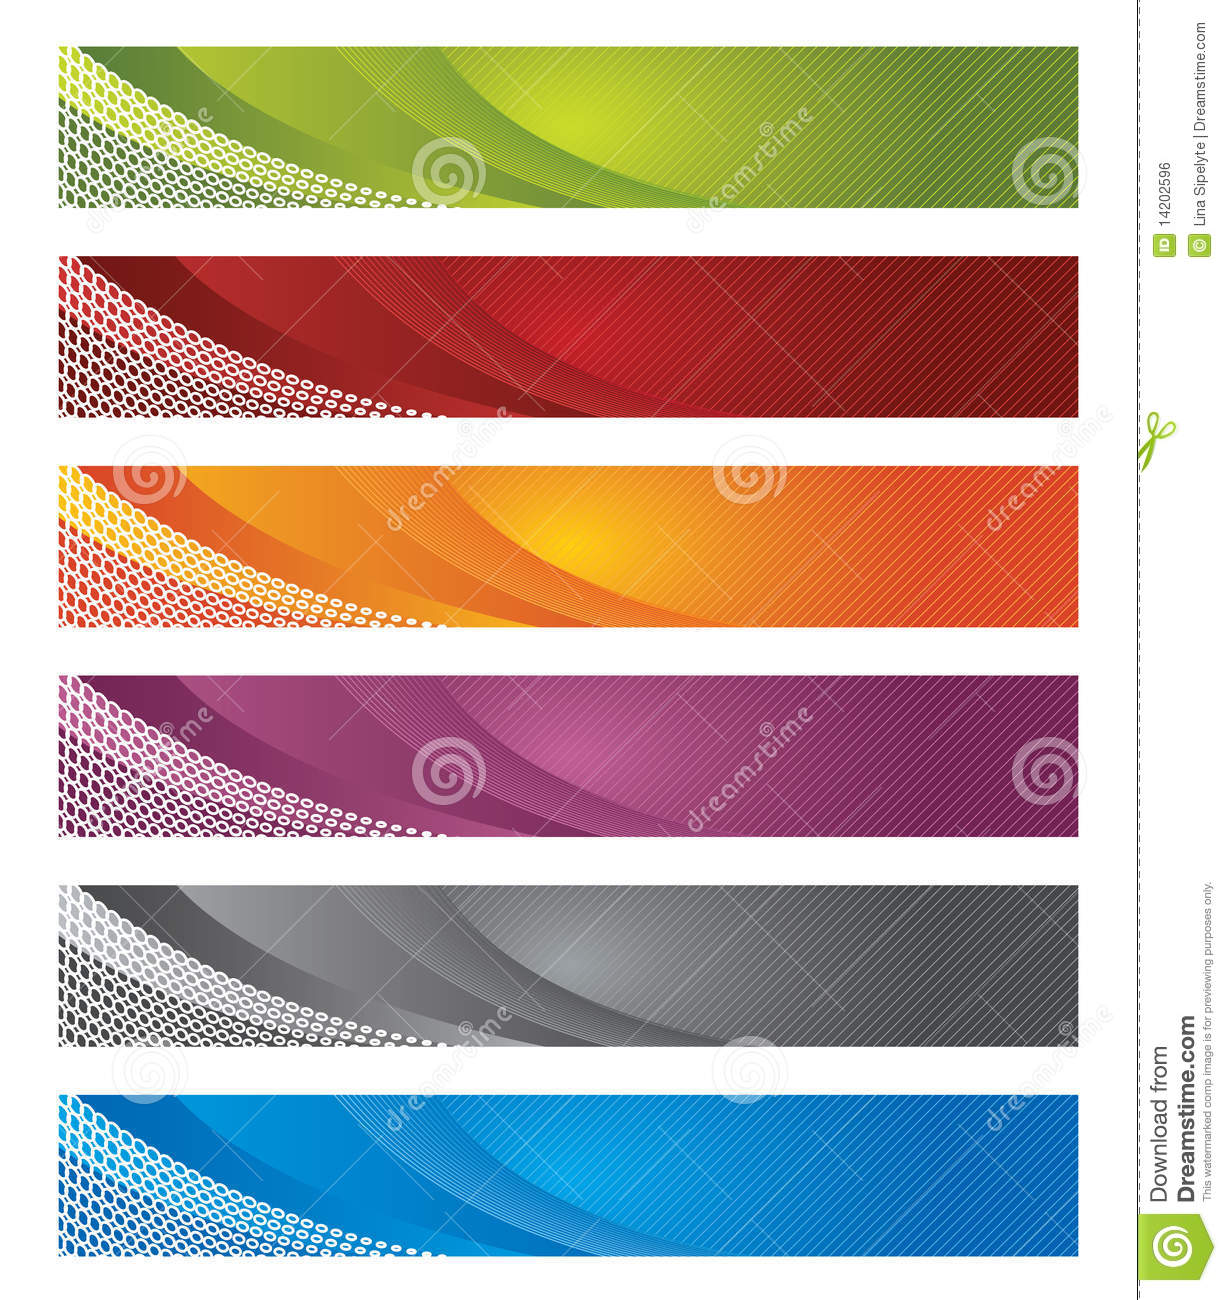 Download Digital Banners In Gradient And Lines Stock Vector - Illustration of color, copyspace: 14202596